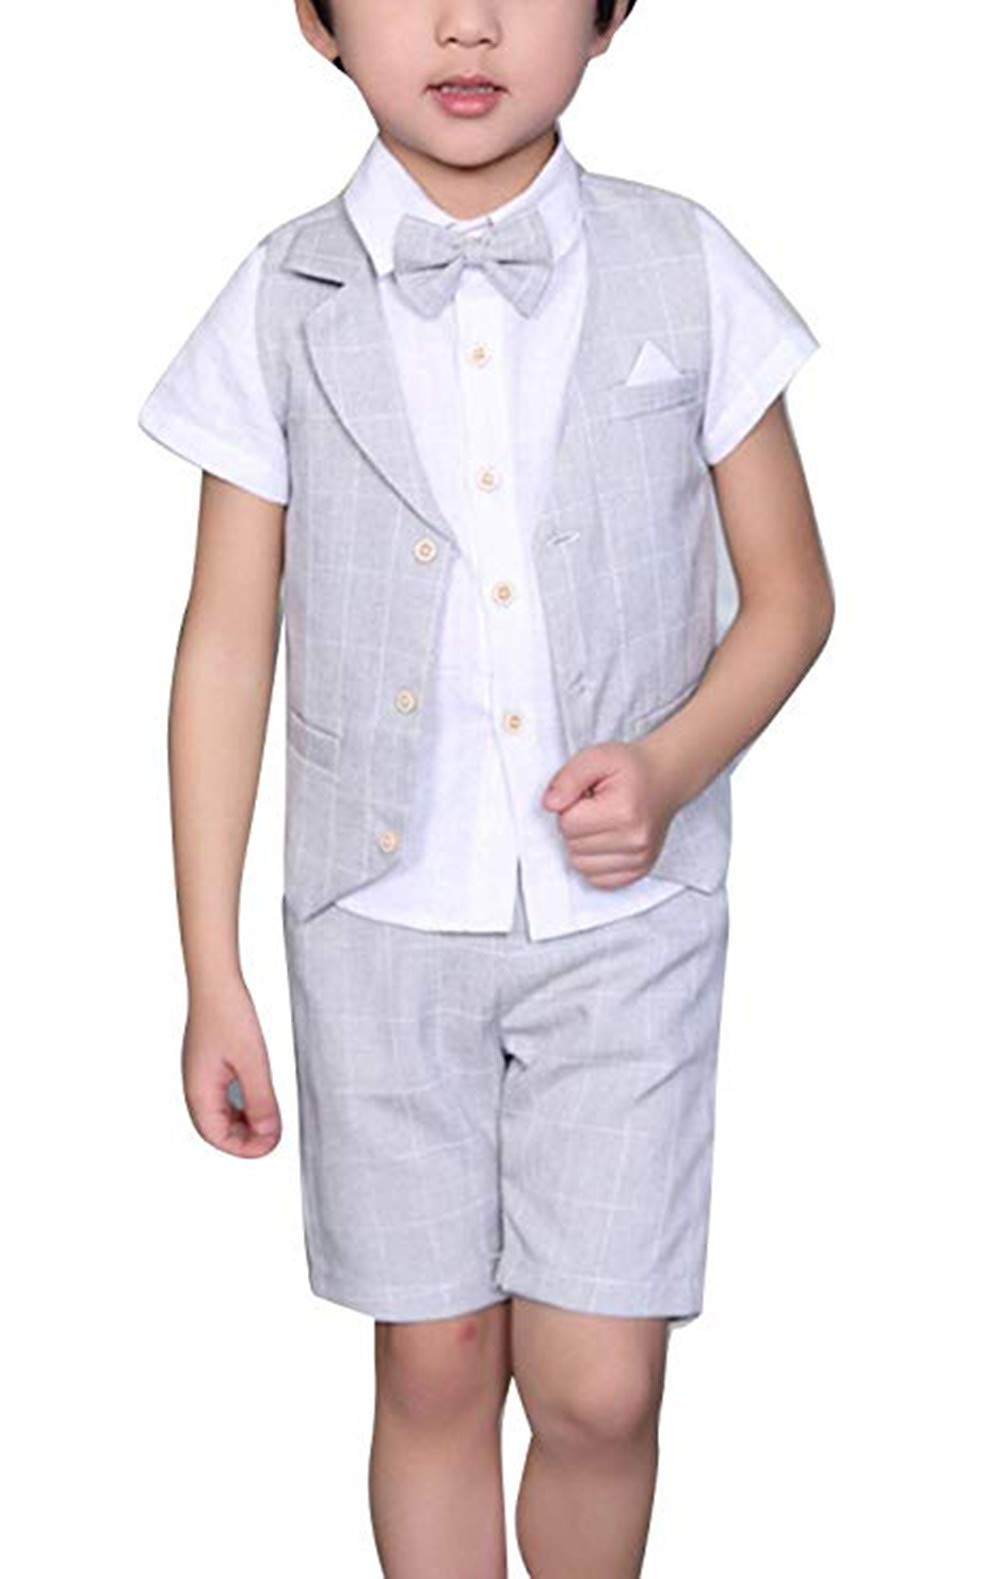 Yilaku Boys' Formal Suit with Shirt and Vest Summer Baby Boys Clothing Set (3-4Years Gray)